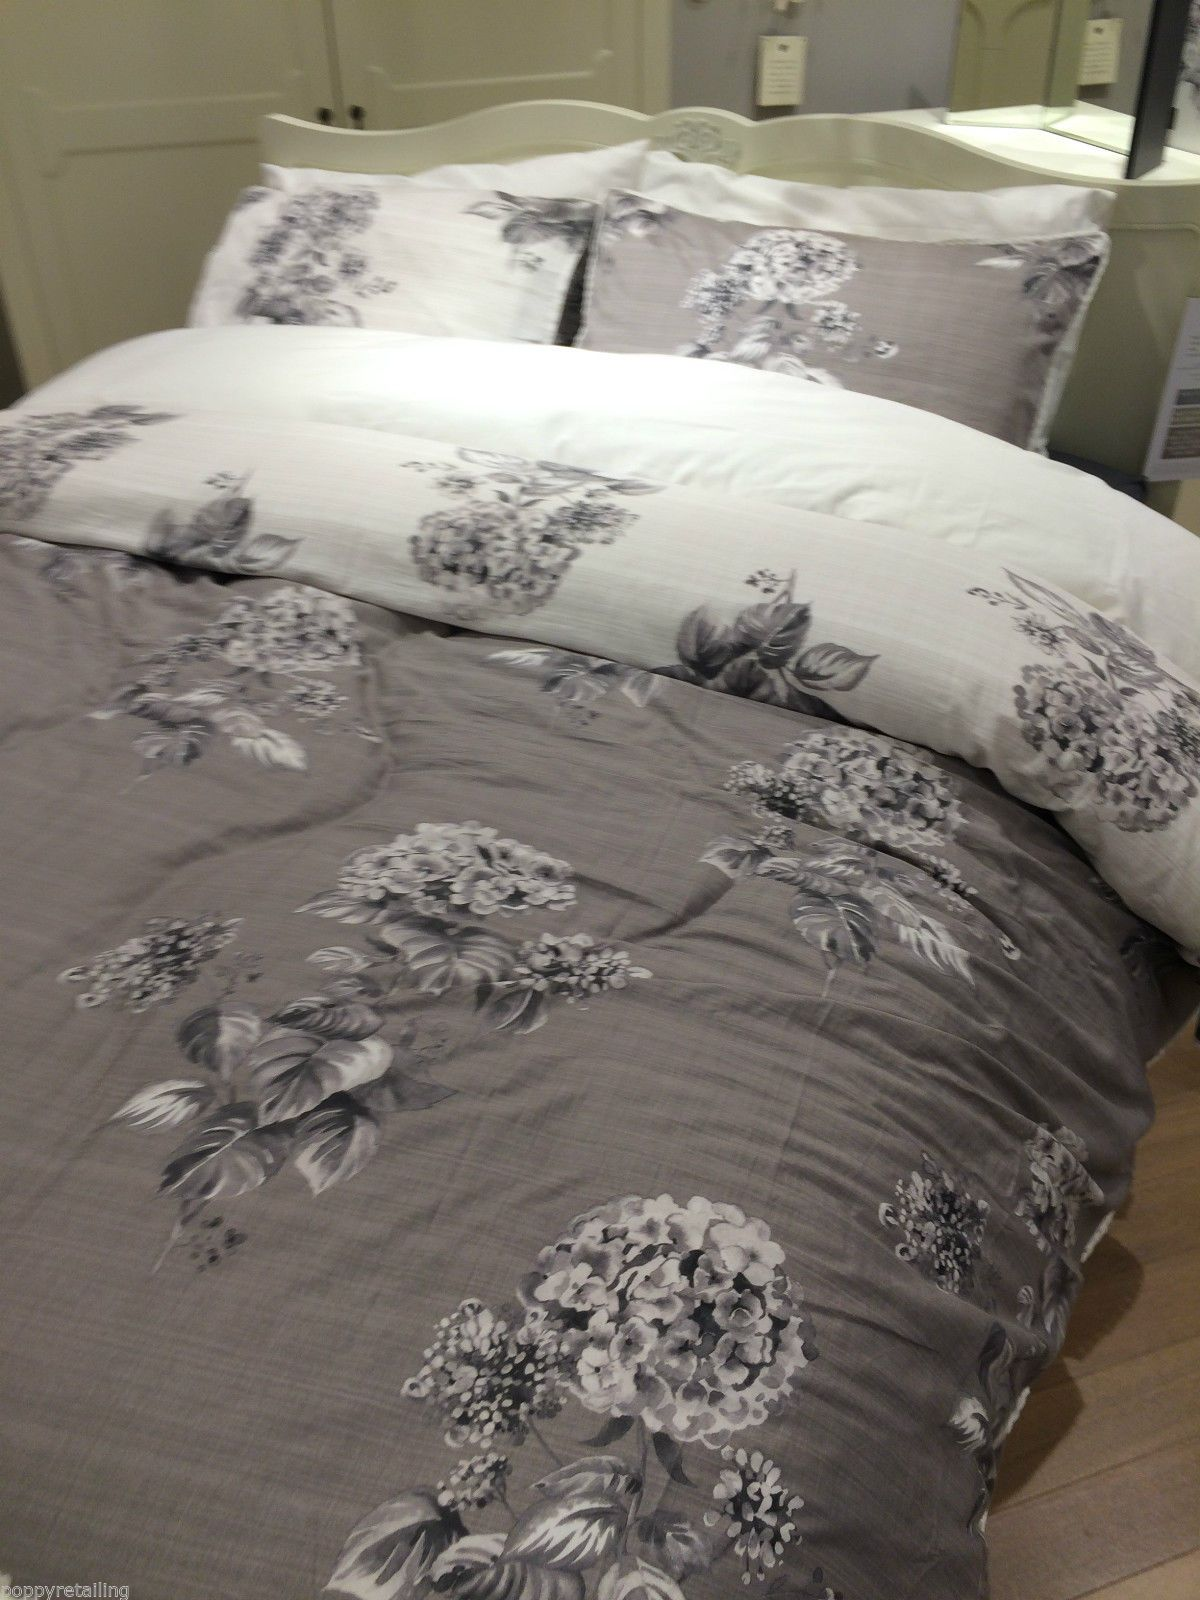 next elegant hydrangea print king size duvet set 09767. Black Bedroom Furniture Sets. Home Design Ideas